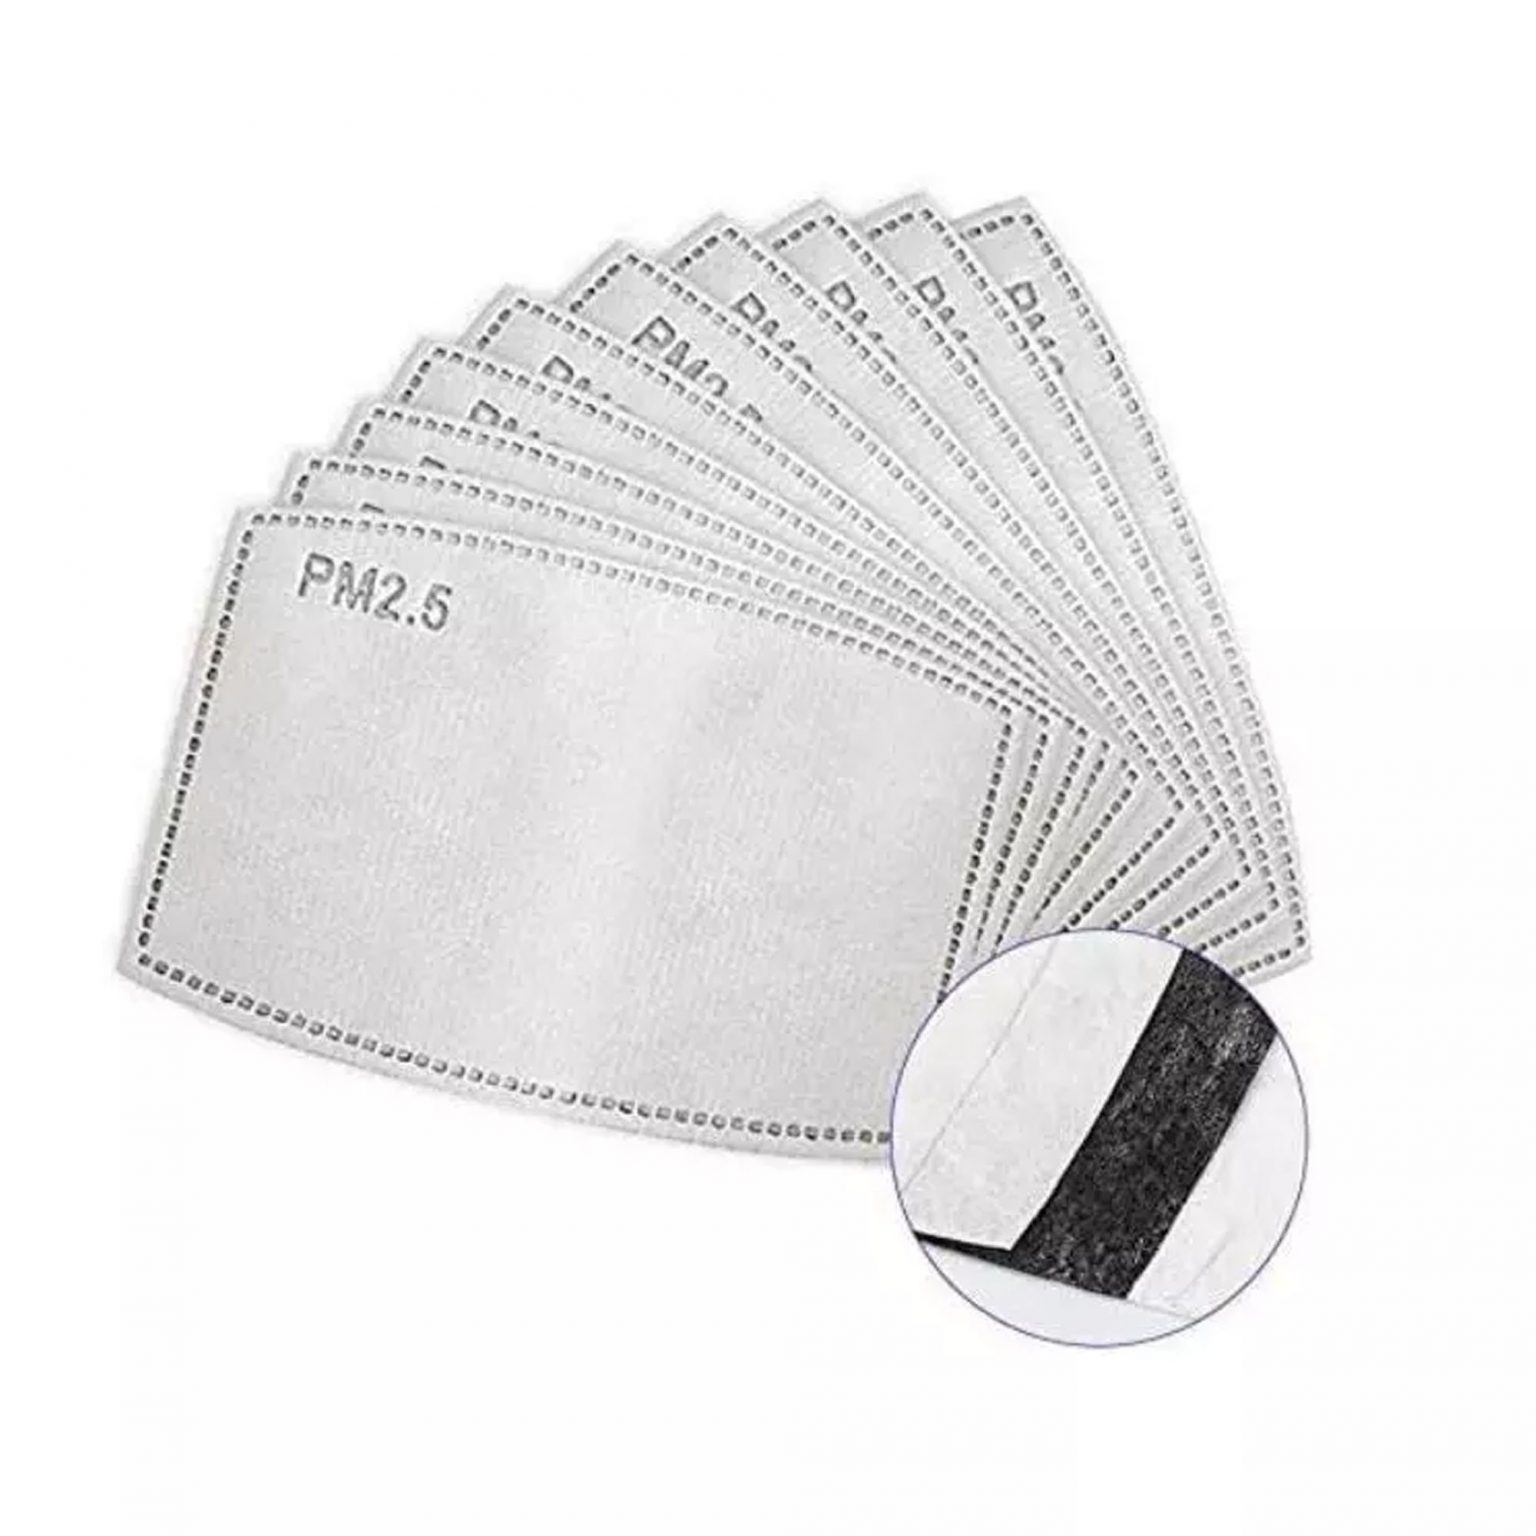 Kids Washable 2-Layer Protective Mask, 3-D Perfect Fit With PM 2.5 Filters, Individually Packed